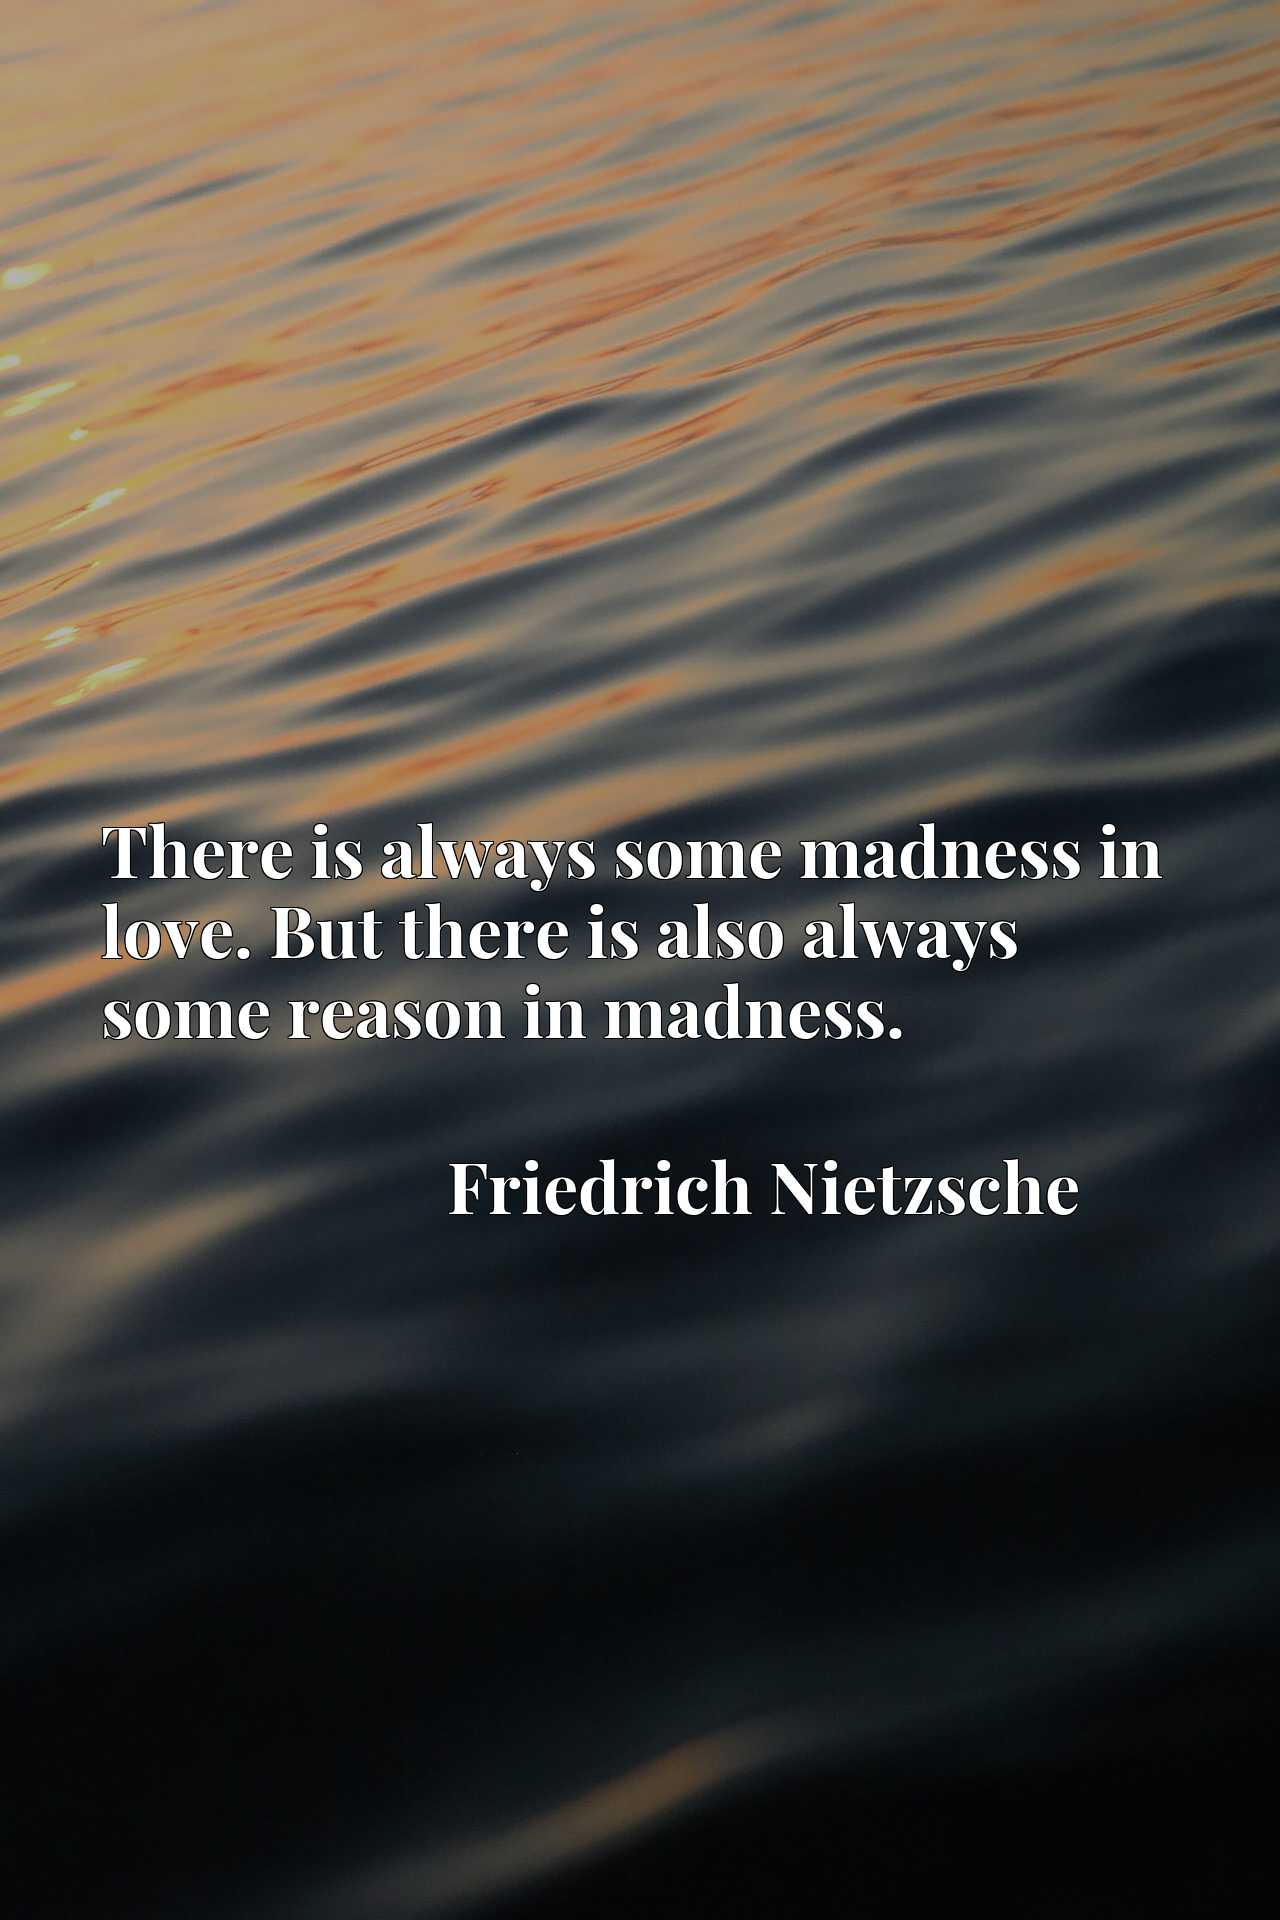 There is always some madness in love. But there is also always some reason in madness.